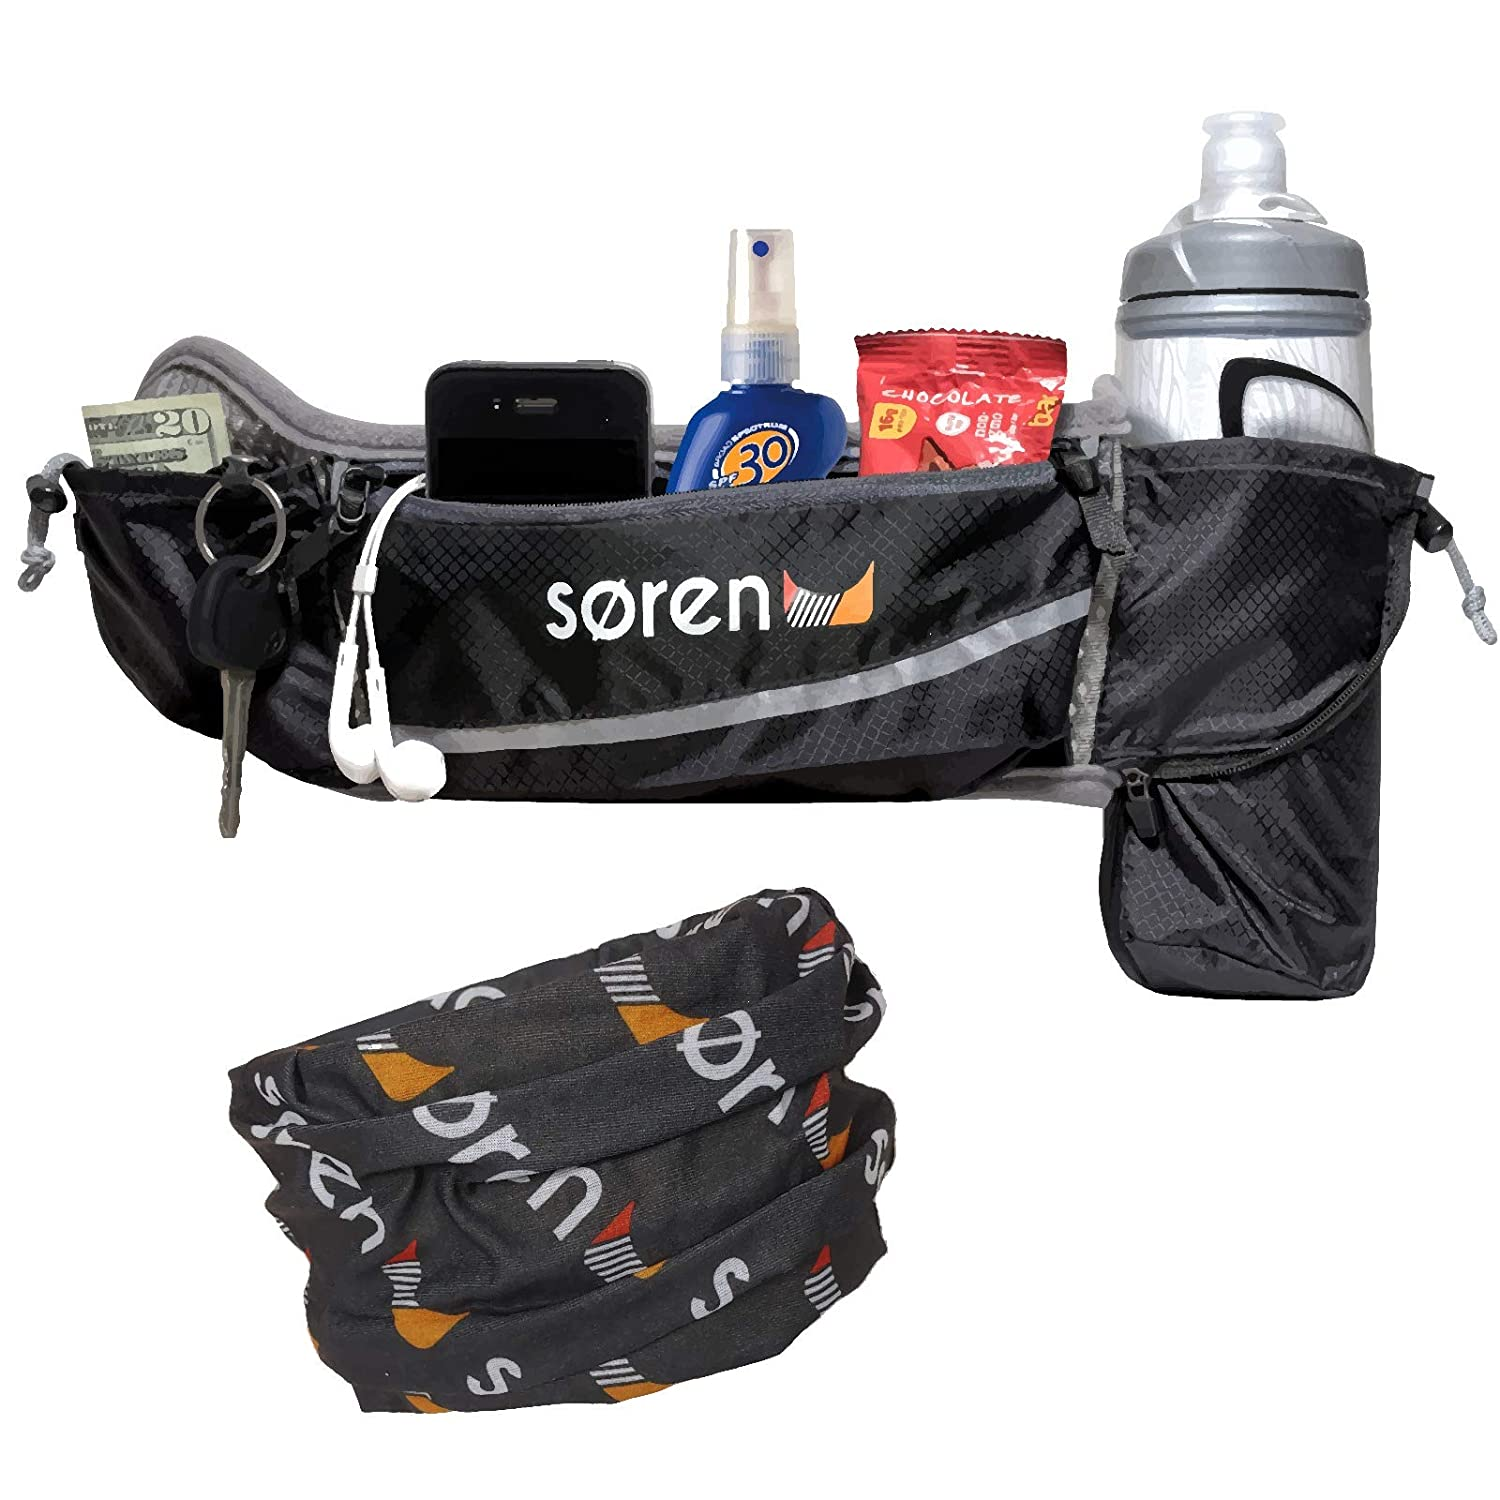 Soren Go Running Belt 3 Pocket Waist Pack Carries The Here Is Diagram Showing Twist Water Bottle Cell Phone Holder For Grey Black With Reflective Trim Ultimate